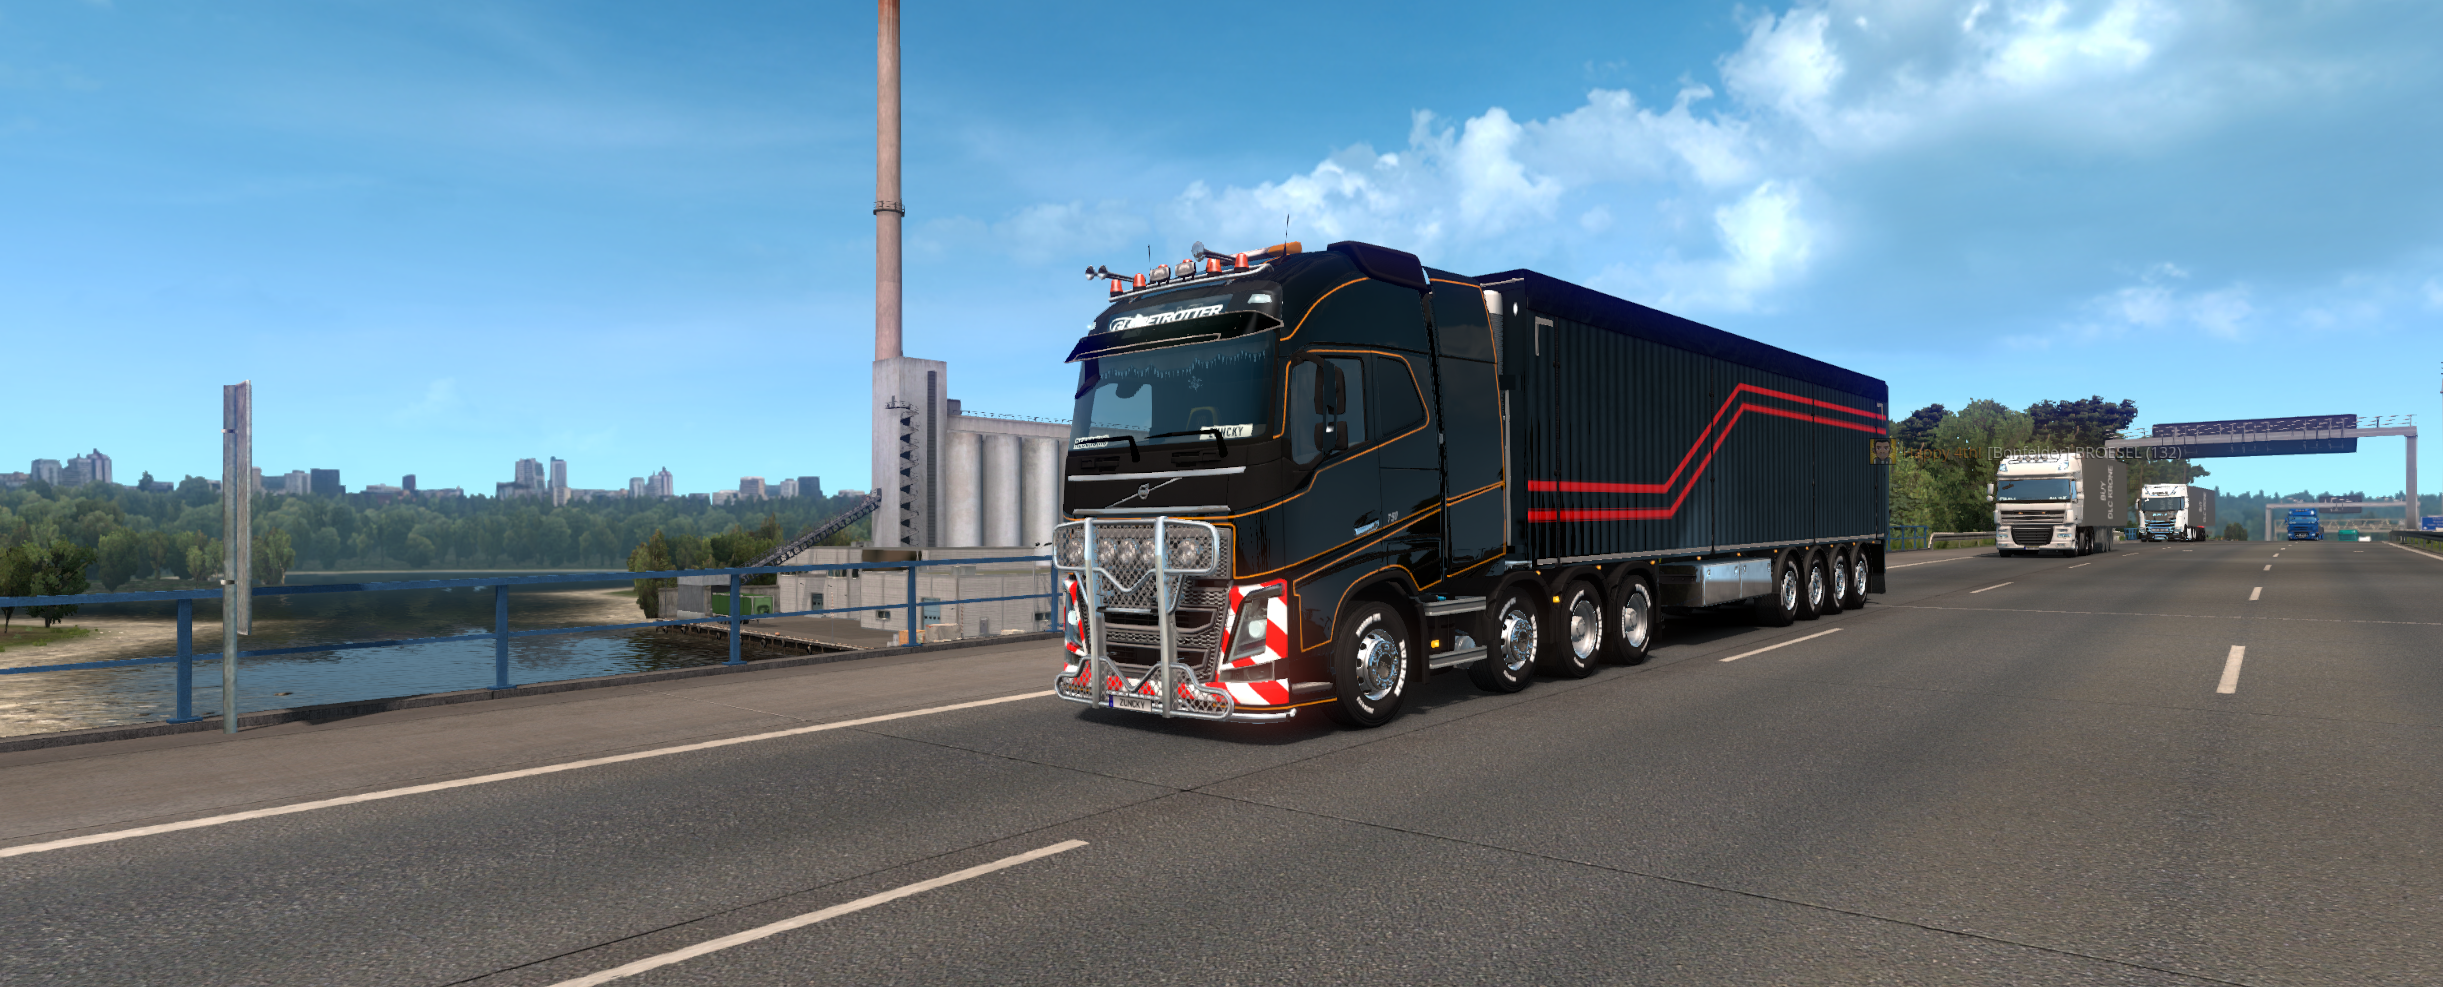 ets2_20190112_223027_00.png